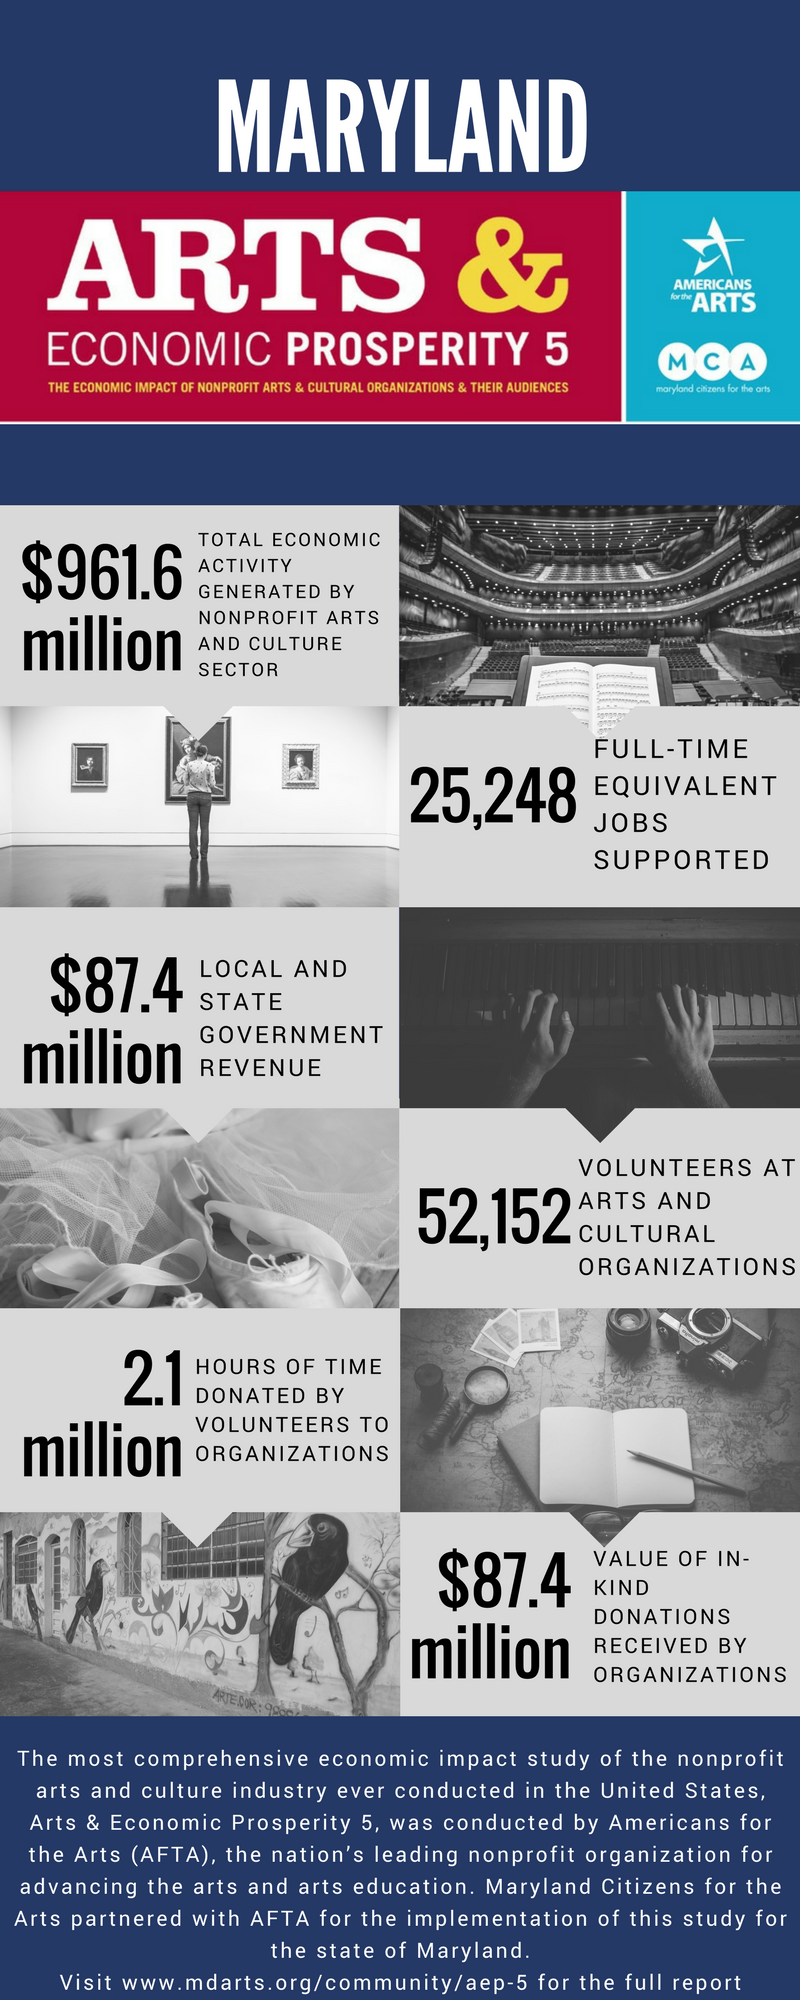 arts economic prosperity infographic